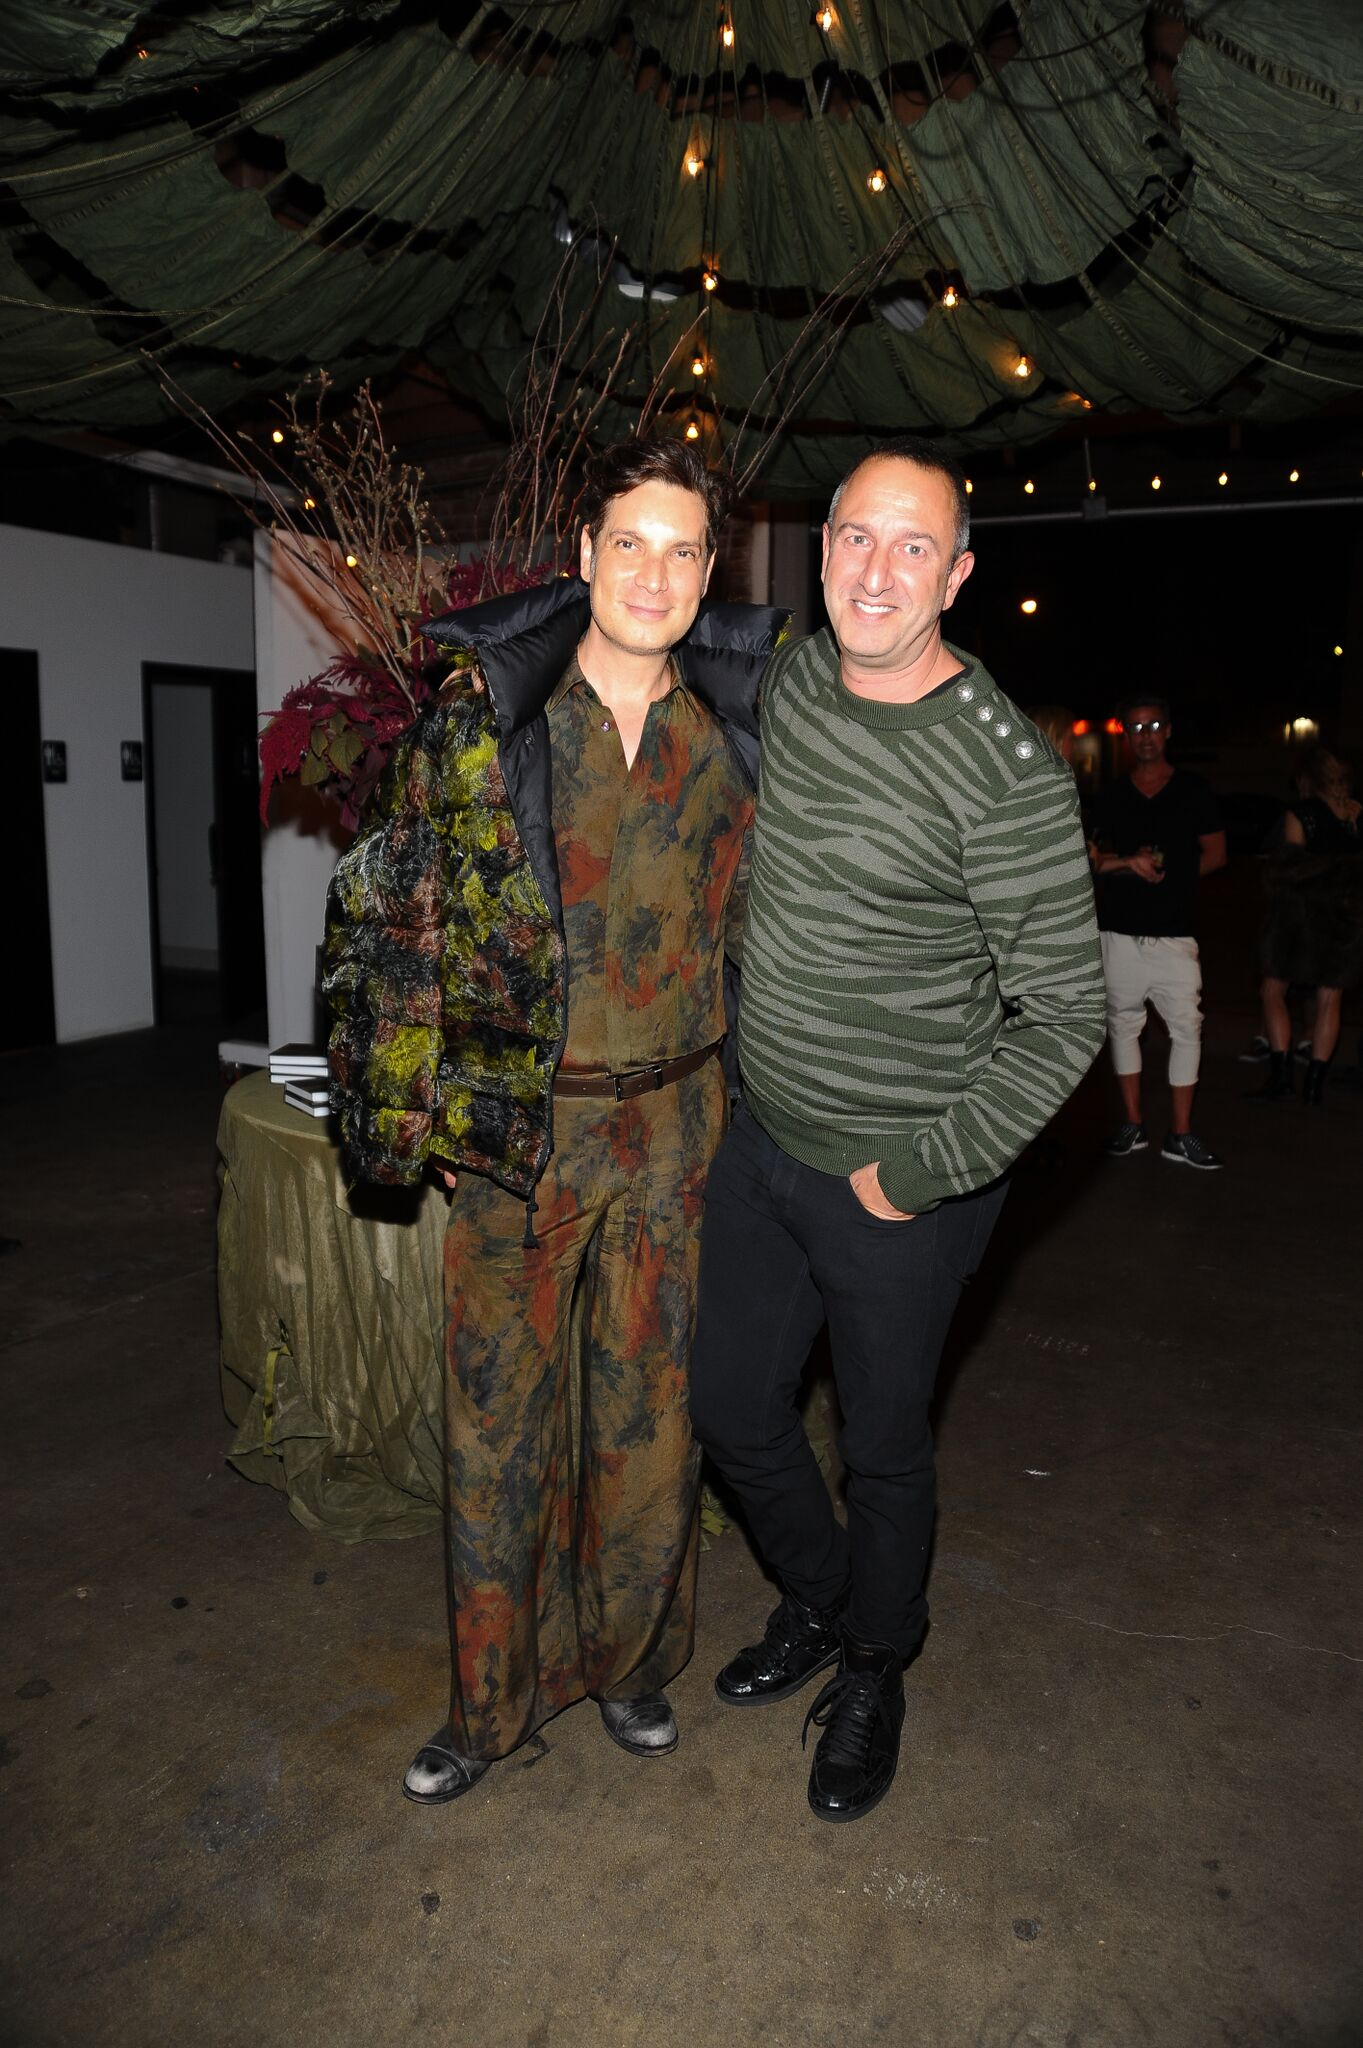 Timothy Godbold - Military Style Invades Fashion - Phaidon Press - cameron silver - christos garkinos .jpg